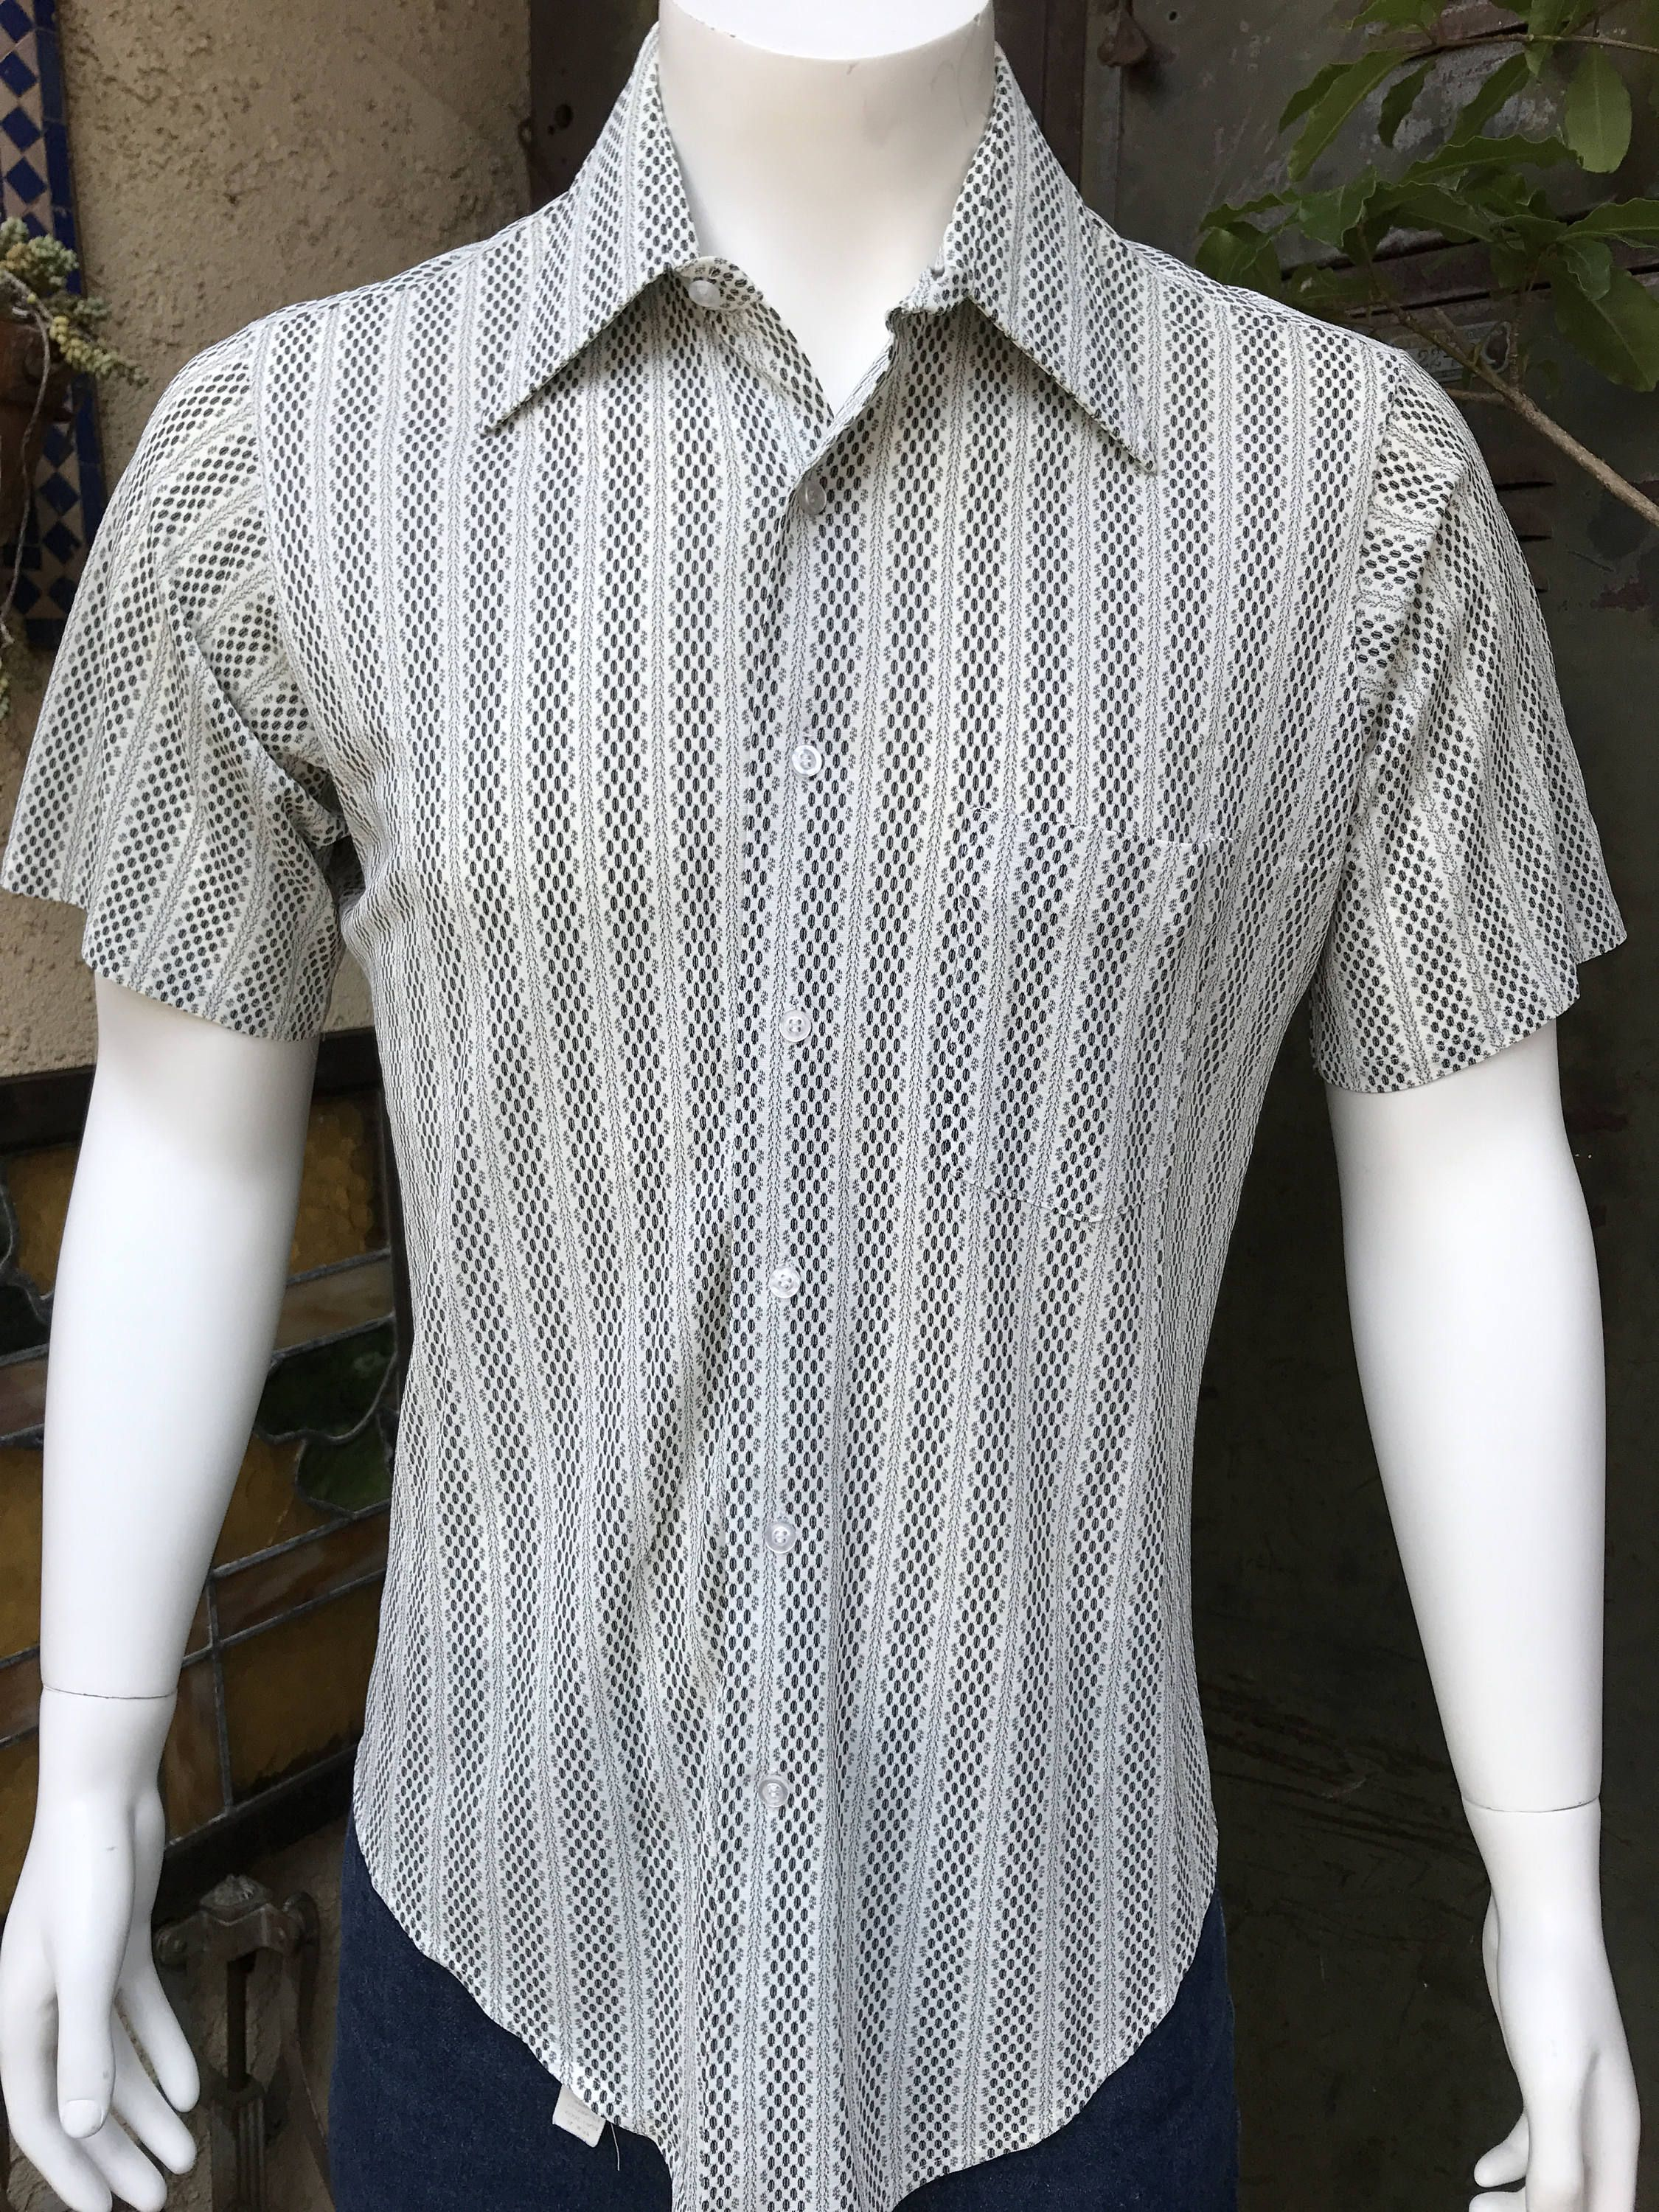 Vintage Men's Clothing •70's Short Sleeve Button-Up Shirt • Navy Blue with Square Pattern • Polyester •Mr. Jay •Made in California GLvGVQu